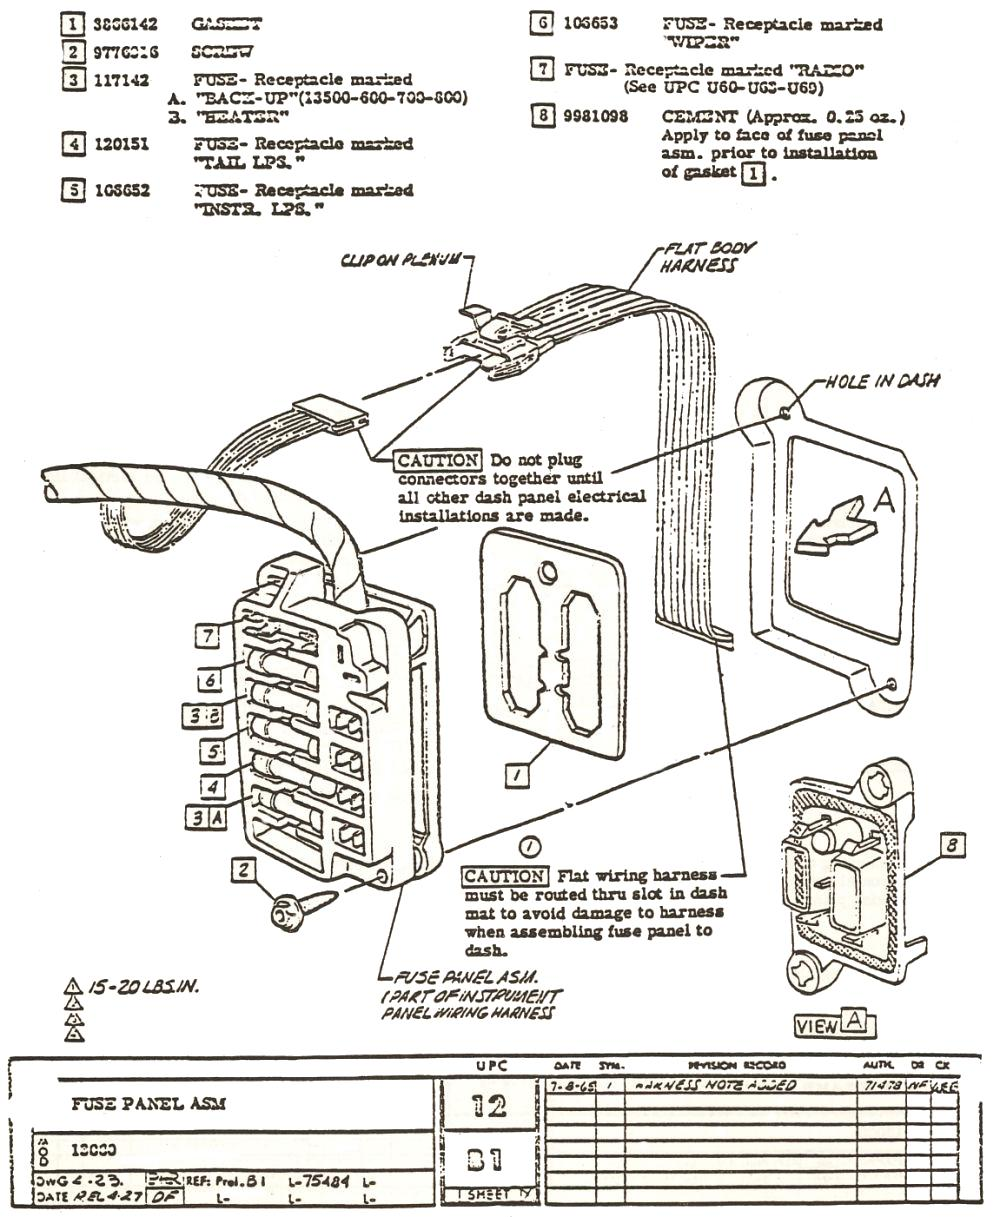 66 Vw Wiring Diagram Auto Electrical 2006 Ktm 200 Exc Related With